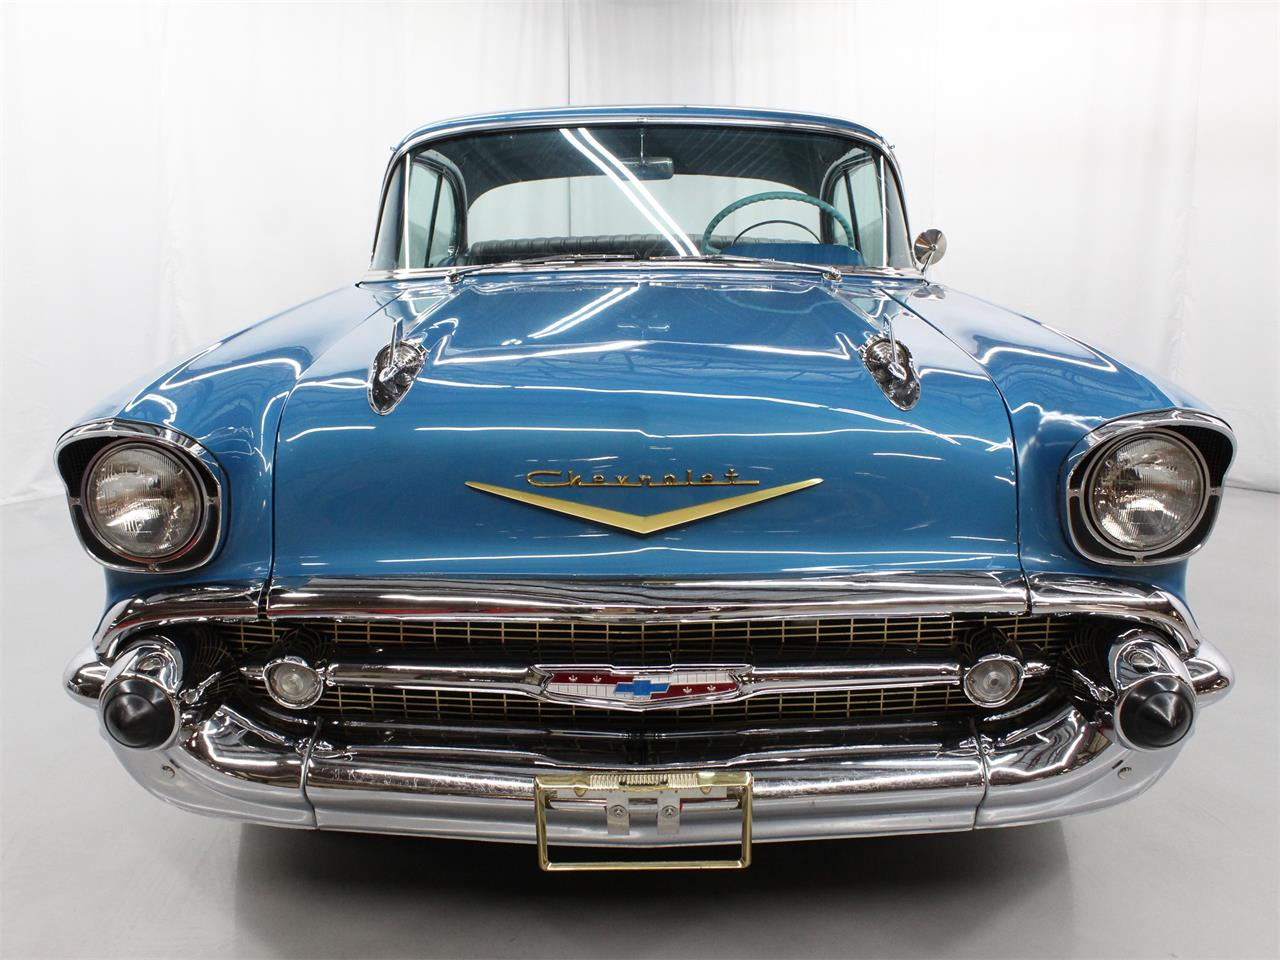 1957 Chevrolet Bel Air (CC-1337358) for sale in Christiansburg, Virginia